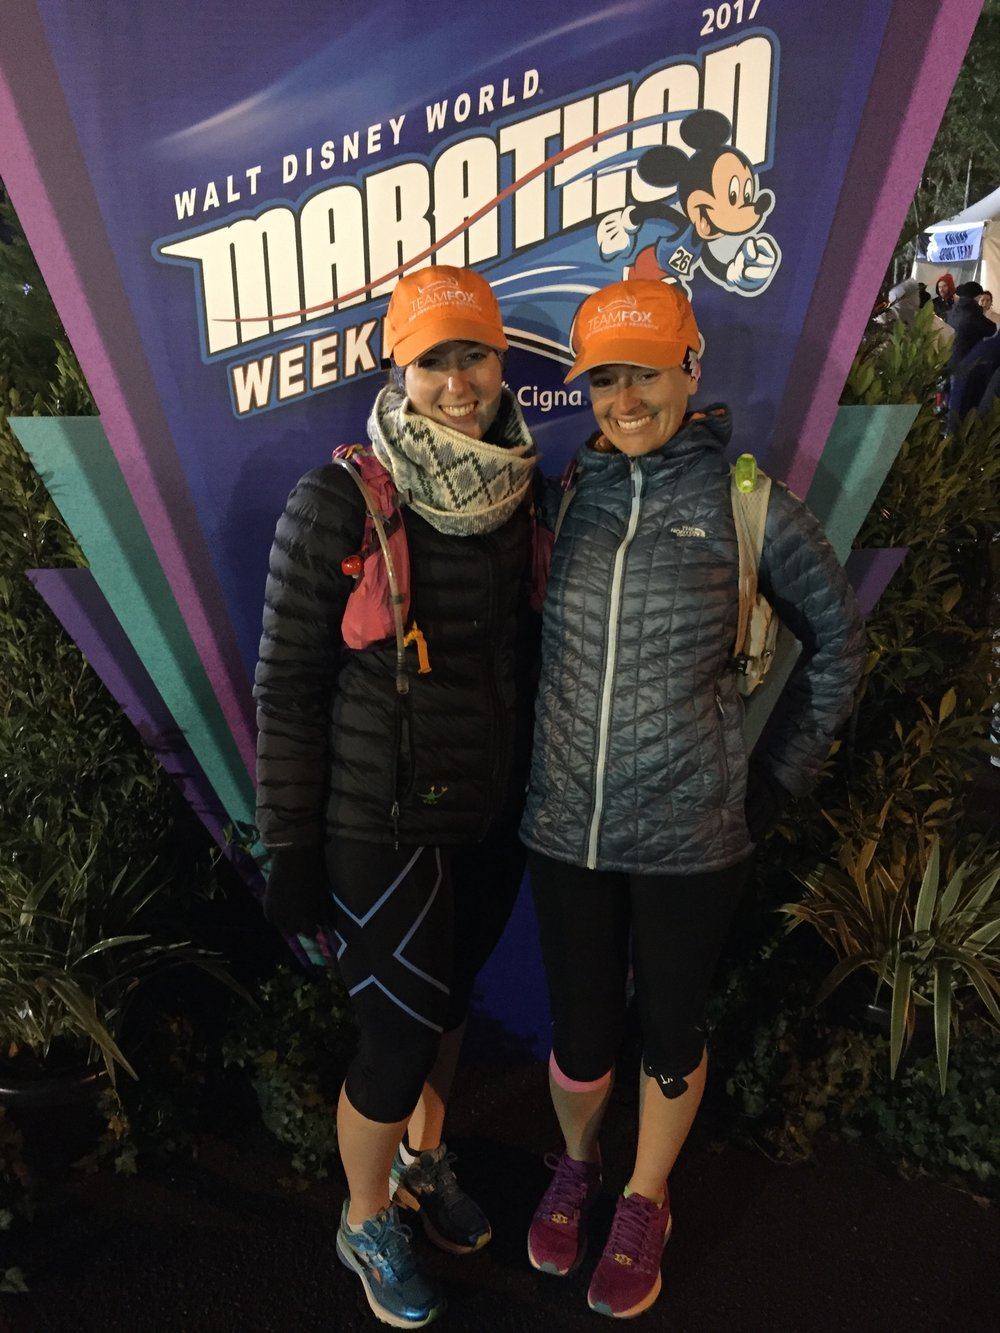 2017 Walt Disney World Marathon